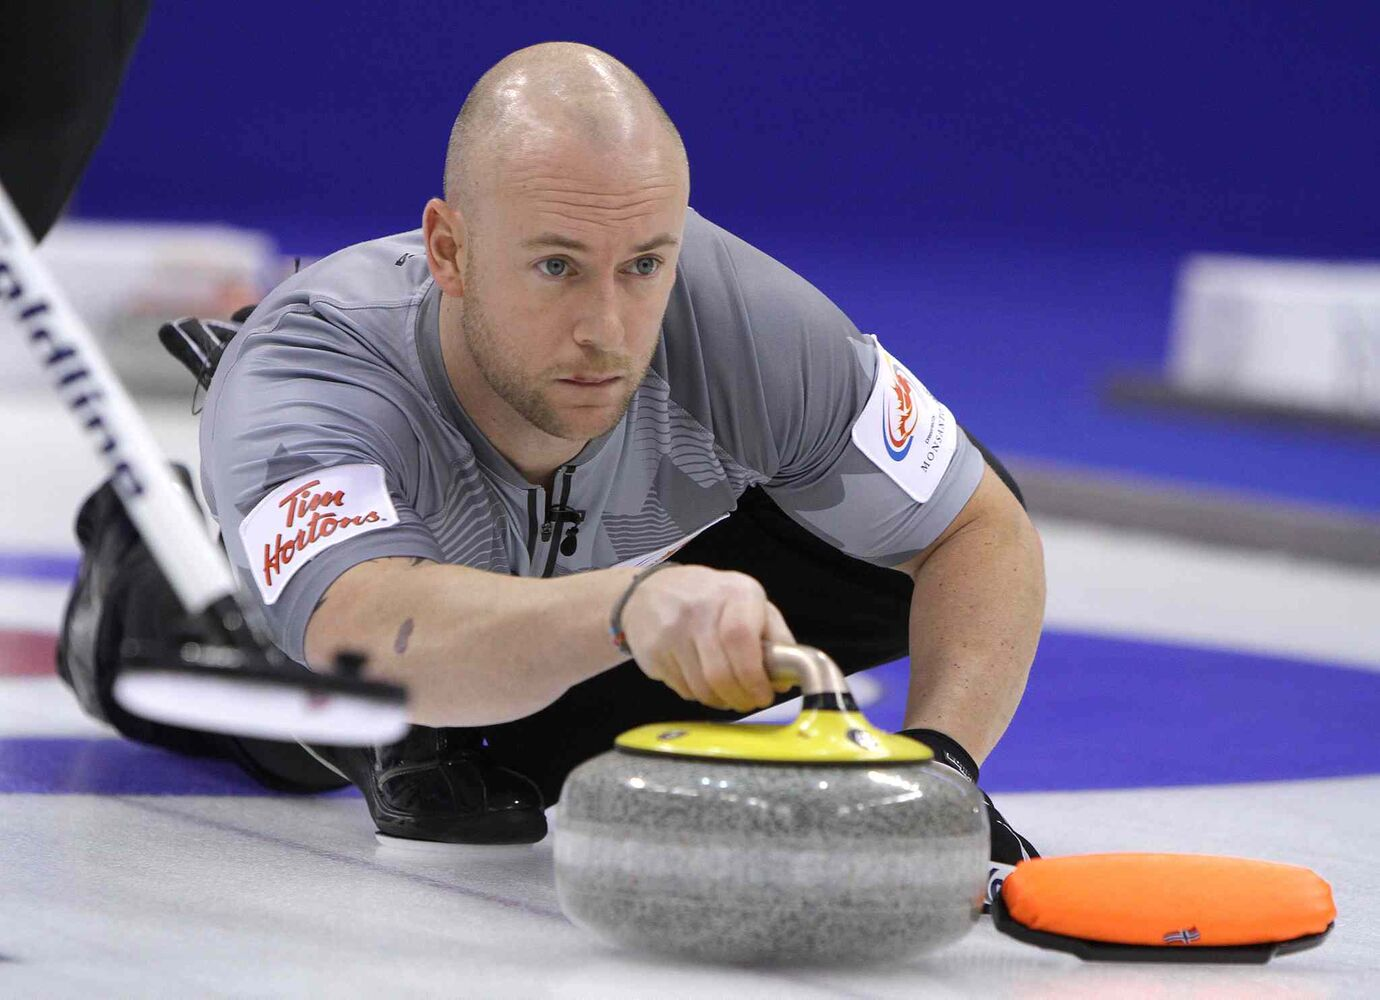 Third Ryan Fry of the Brad Jacobs rink throws a stone. (Jason Halstead / Winnipeg Free Press)